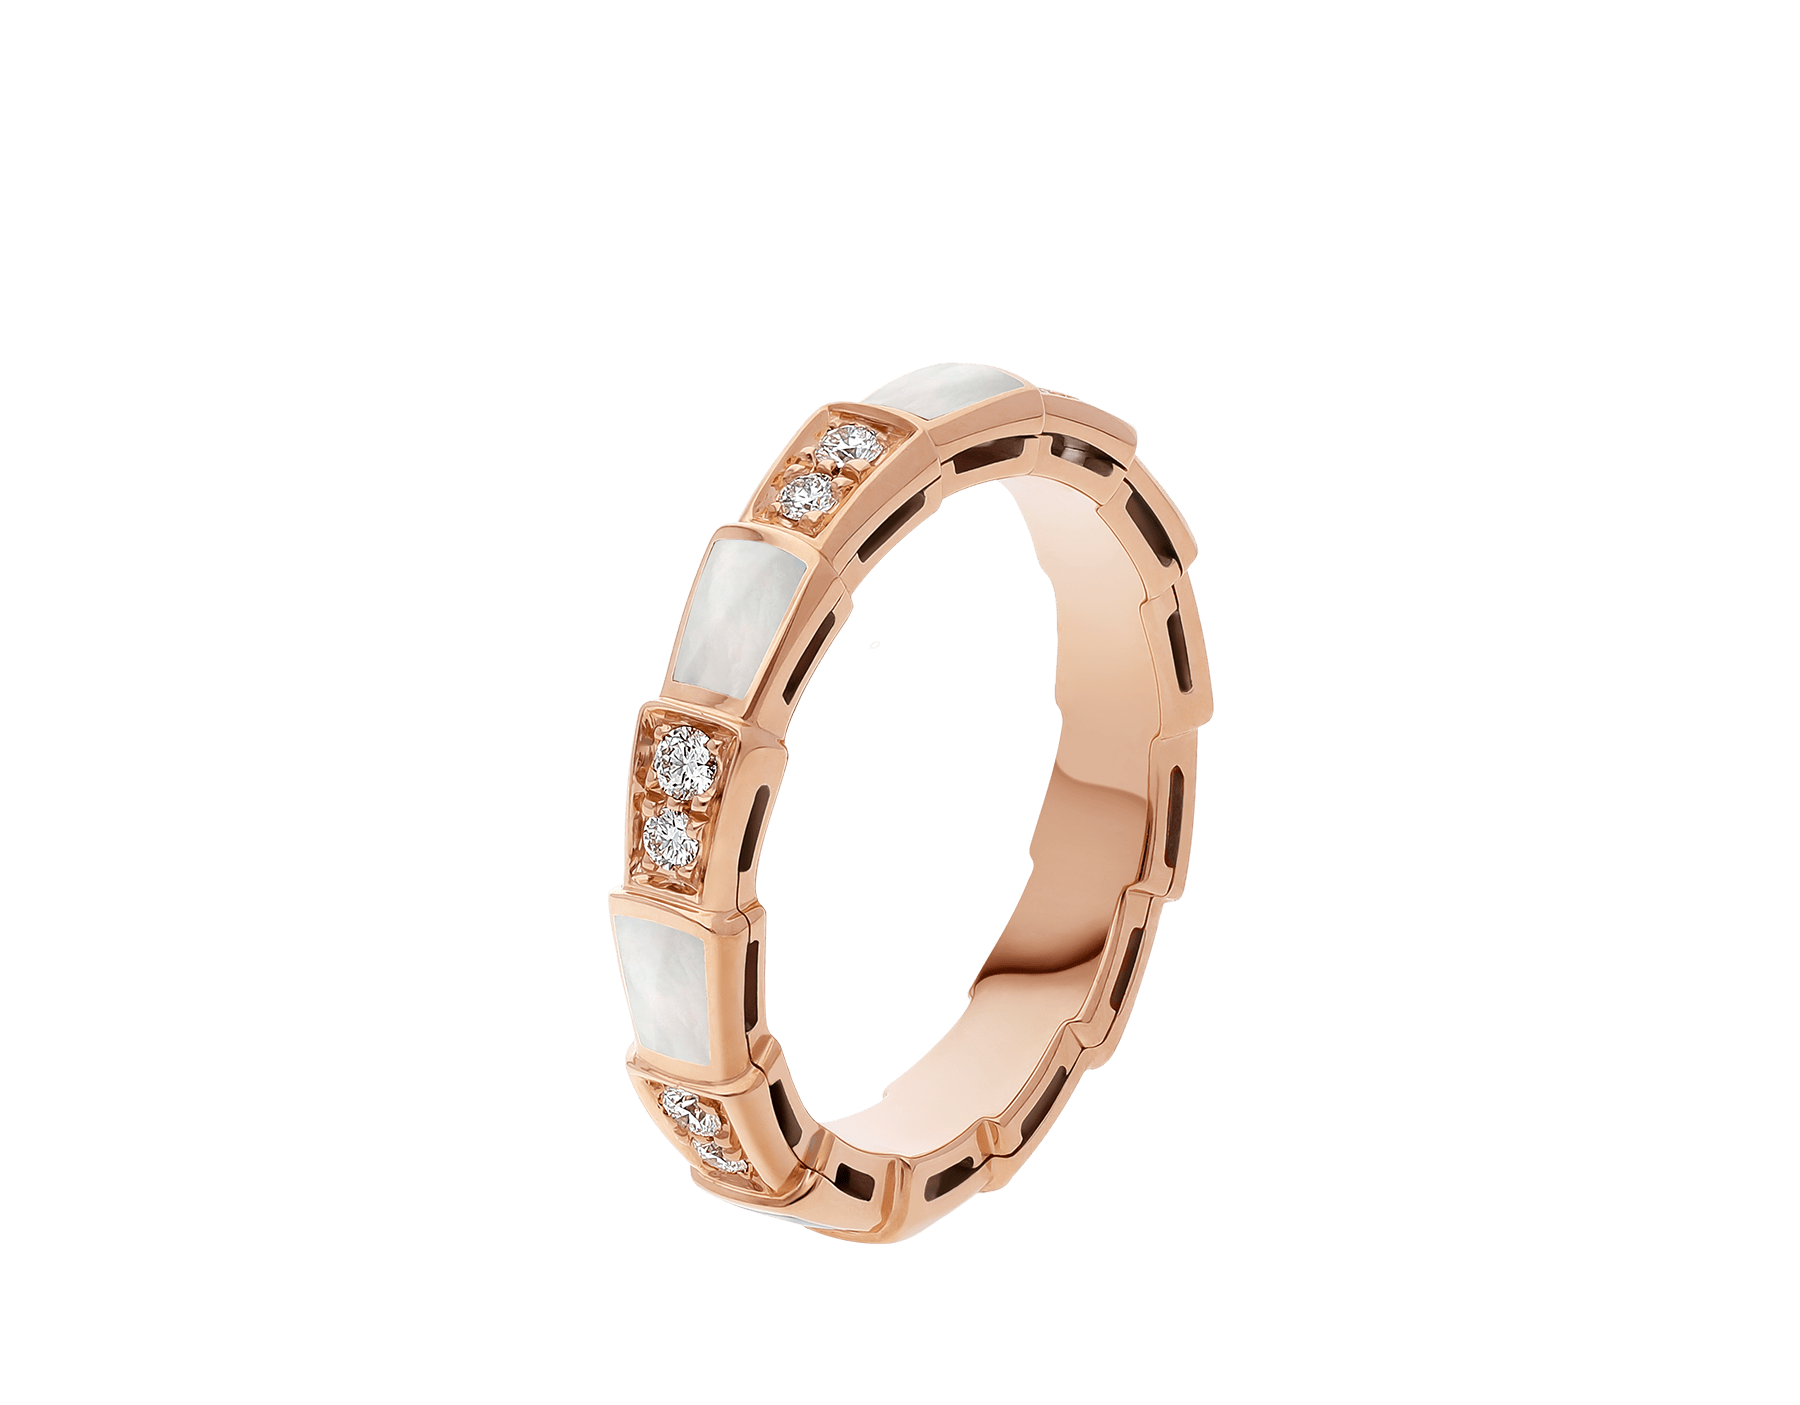 Serpenti Viper band ring in 18 kt rose gold set with mother-of-pearl elements and pavé diamonds (0.25 ct). AN858042 image 1